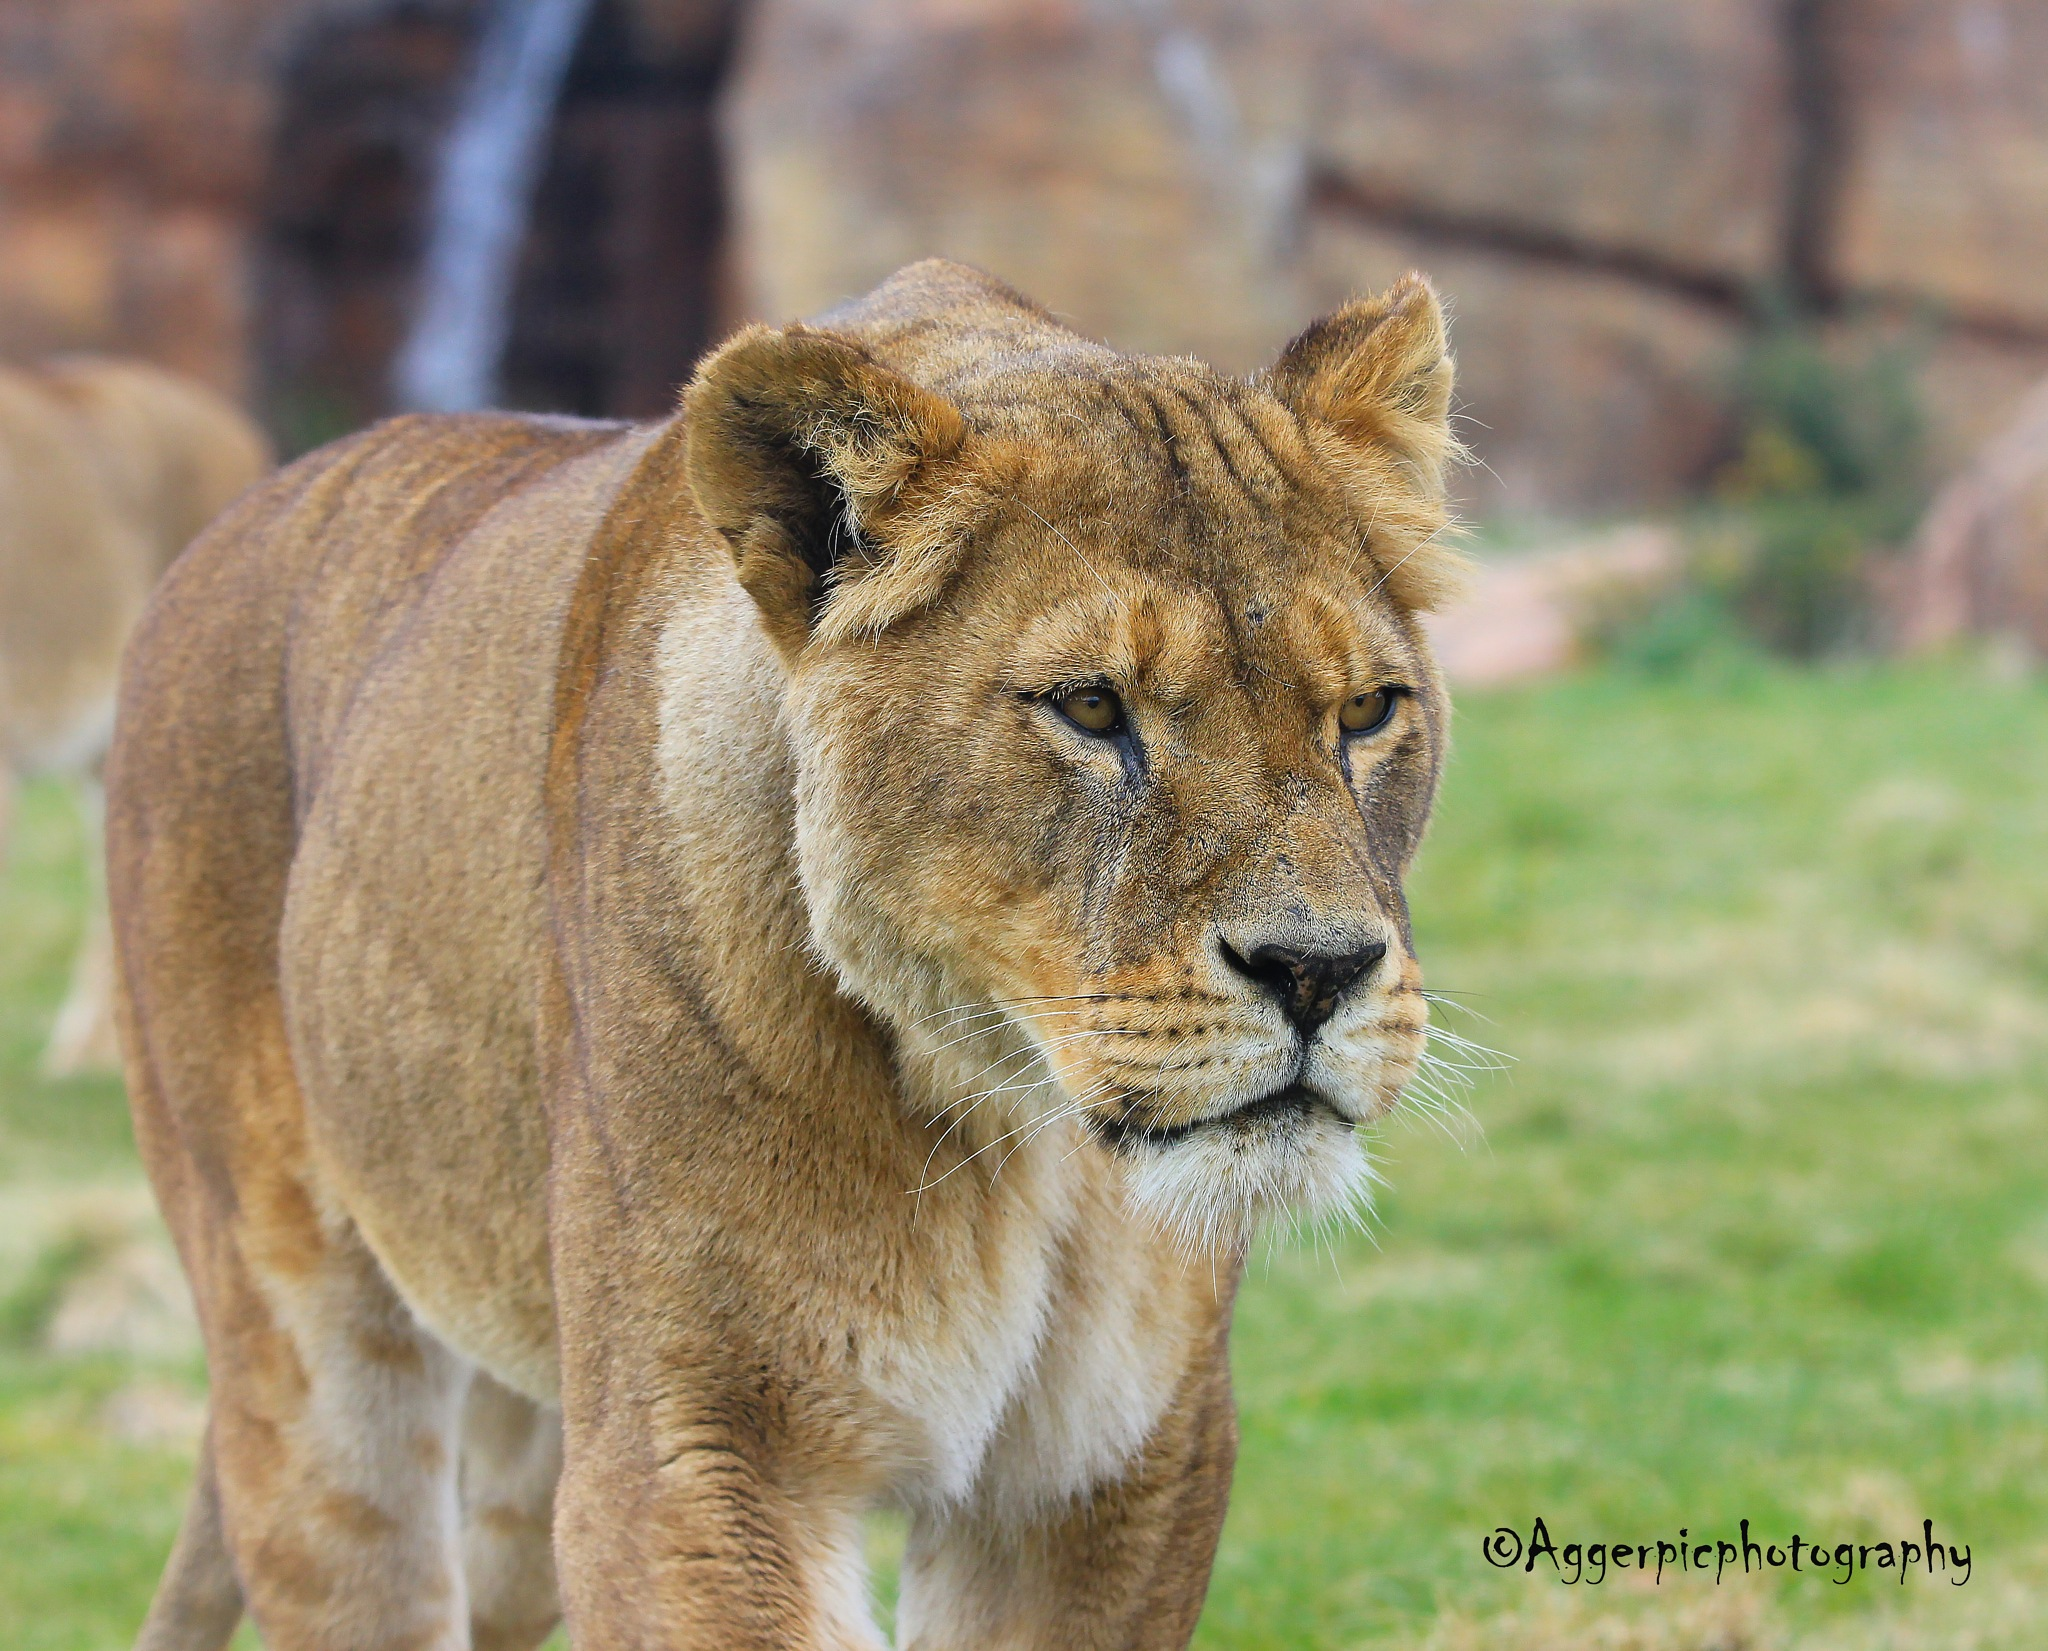 Lioness by Aggerpicphotography